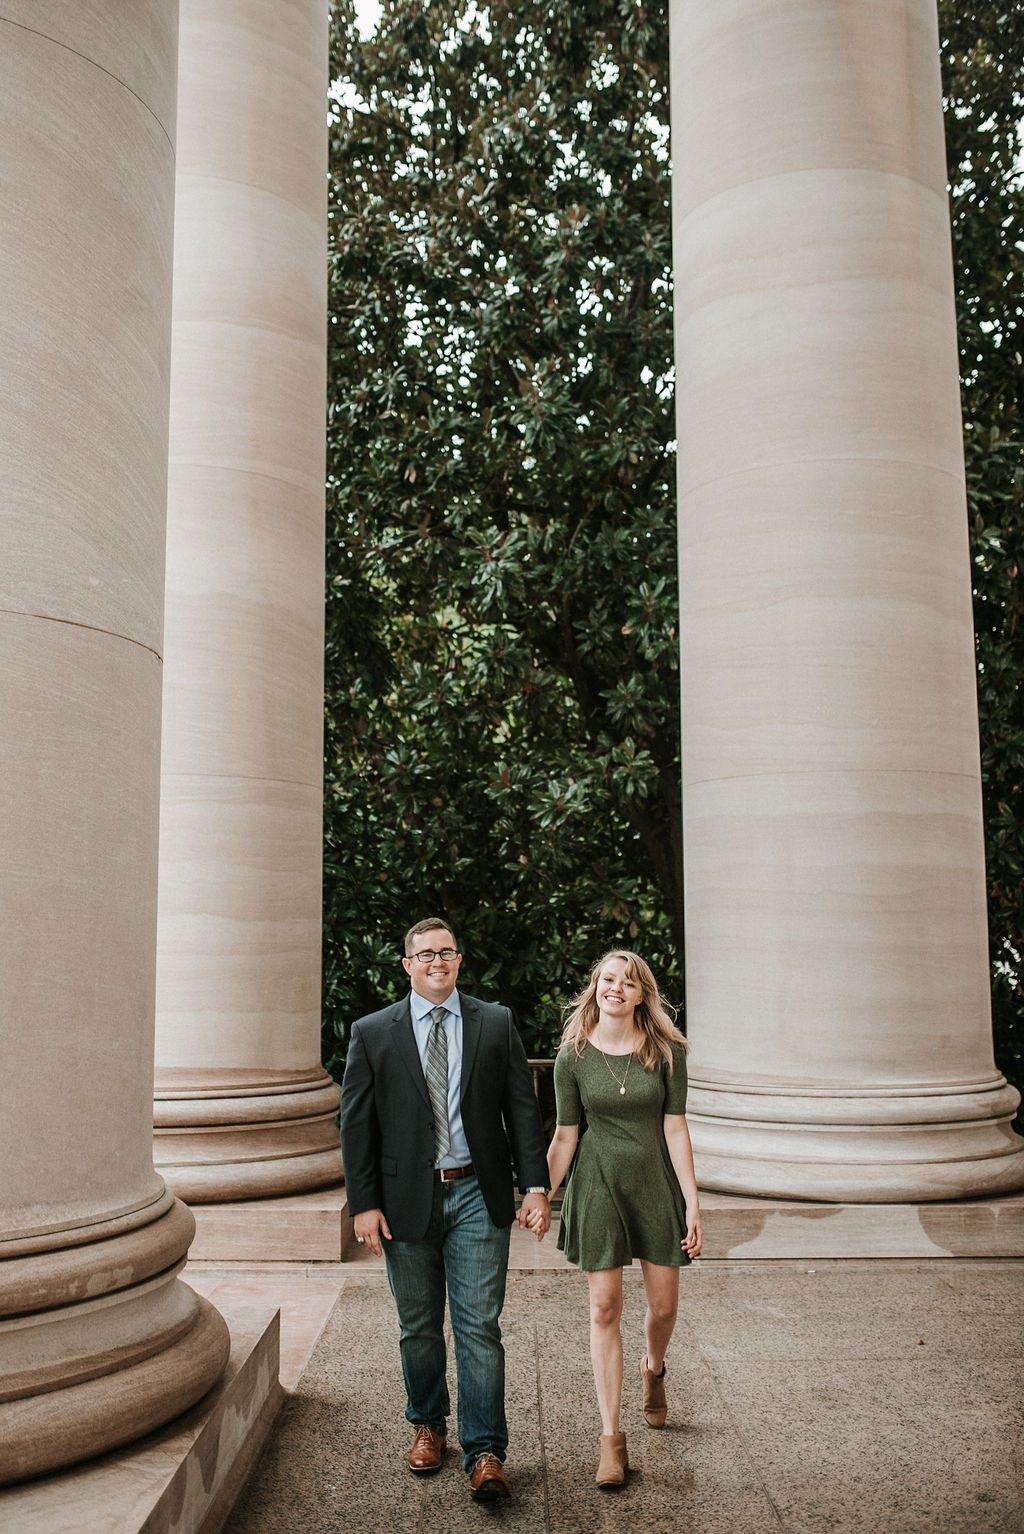 Engagement Shoot at Smithsonian National Portrait Gallery